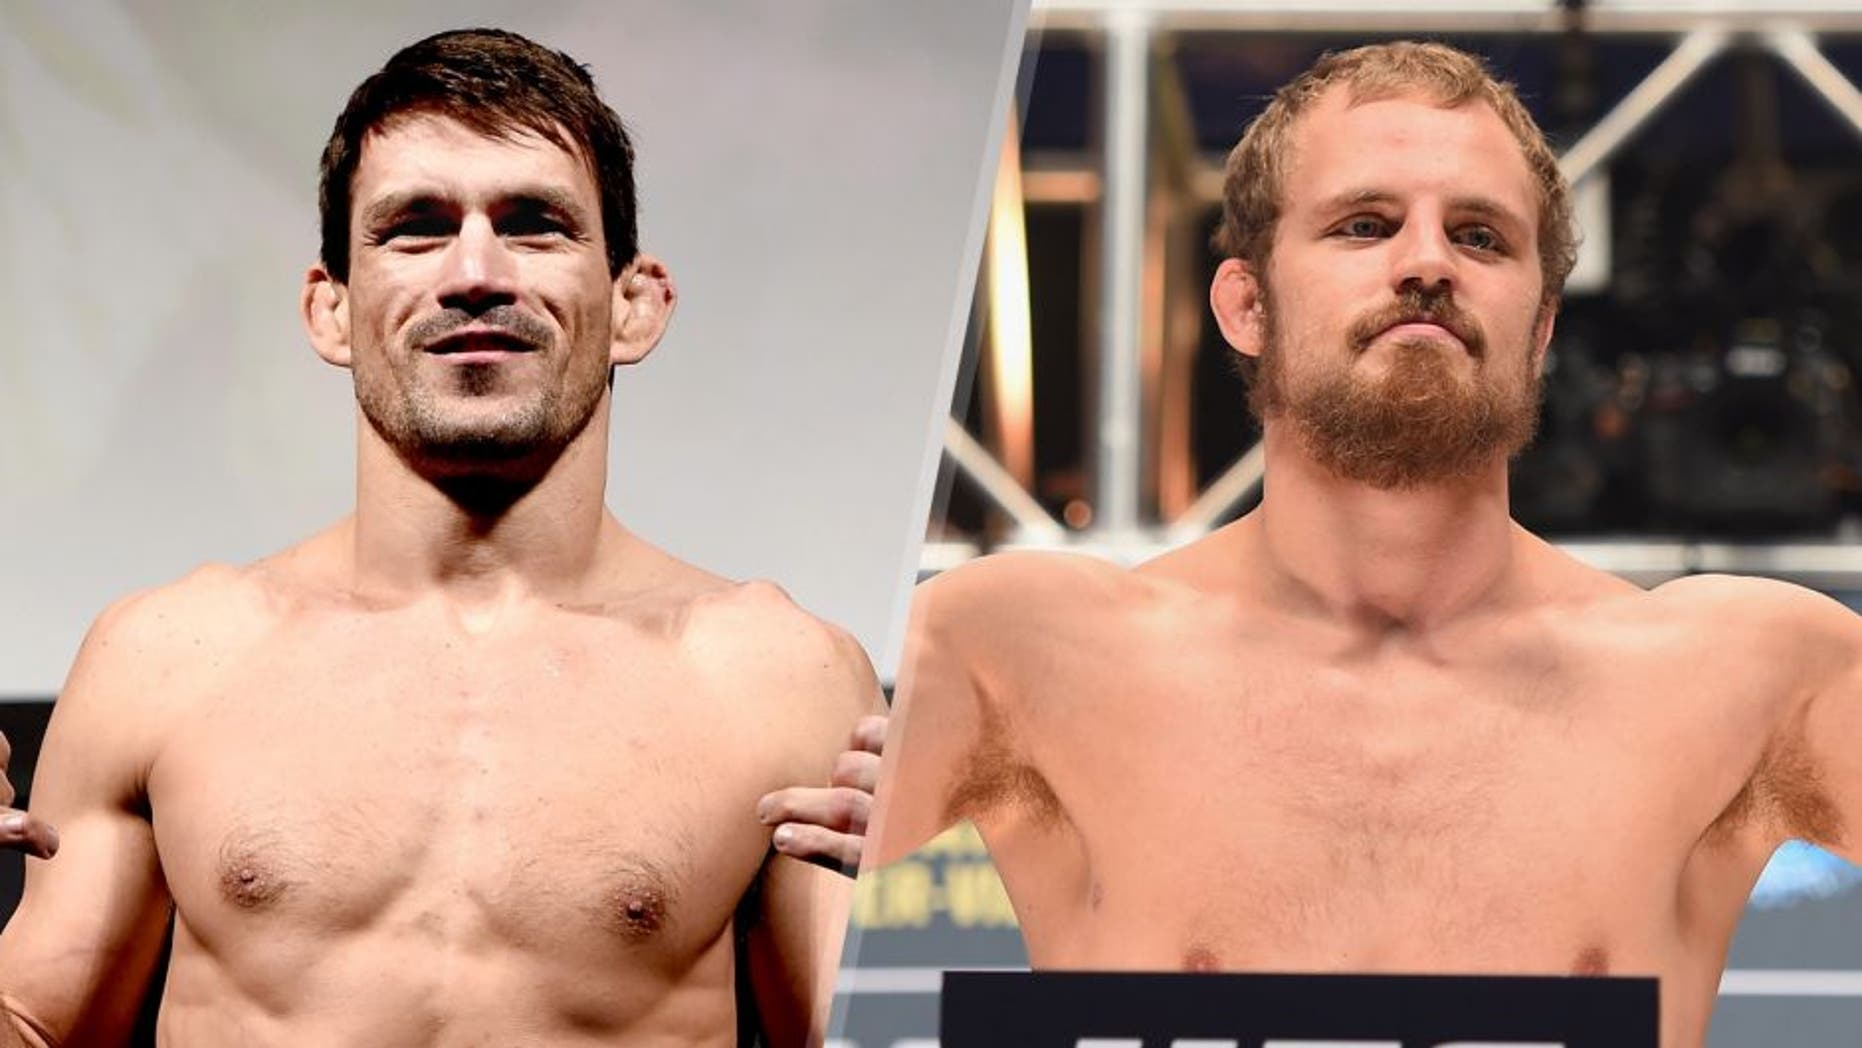 Demian Maia of Brazil weighs in during the UFC Fight Night Weigh-ins at Maracanazinho on March 20, 2015 in Rio de Janeiro, Brazil. (Photo by Buda Mendes/Zuffa LLC/Zuffa LLC via Getty Images) Gunnar Nelson steps onto the scale during the UFC 189 weigh-in inside MGM Grand Garden Arena on July 10, 2015 in Las Vegas, Nevada. (Photo by Josh Hedges/Zuffa LLC/Zuffa LLC via Getty Images)